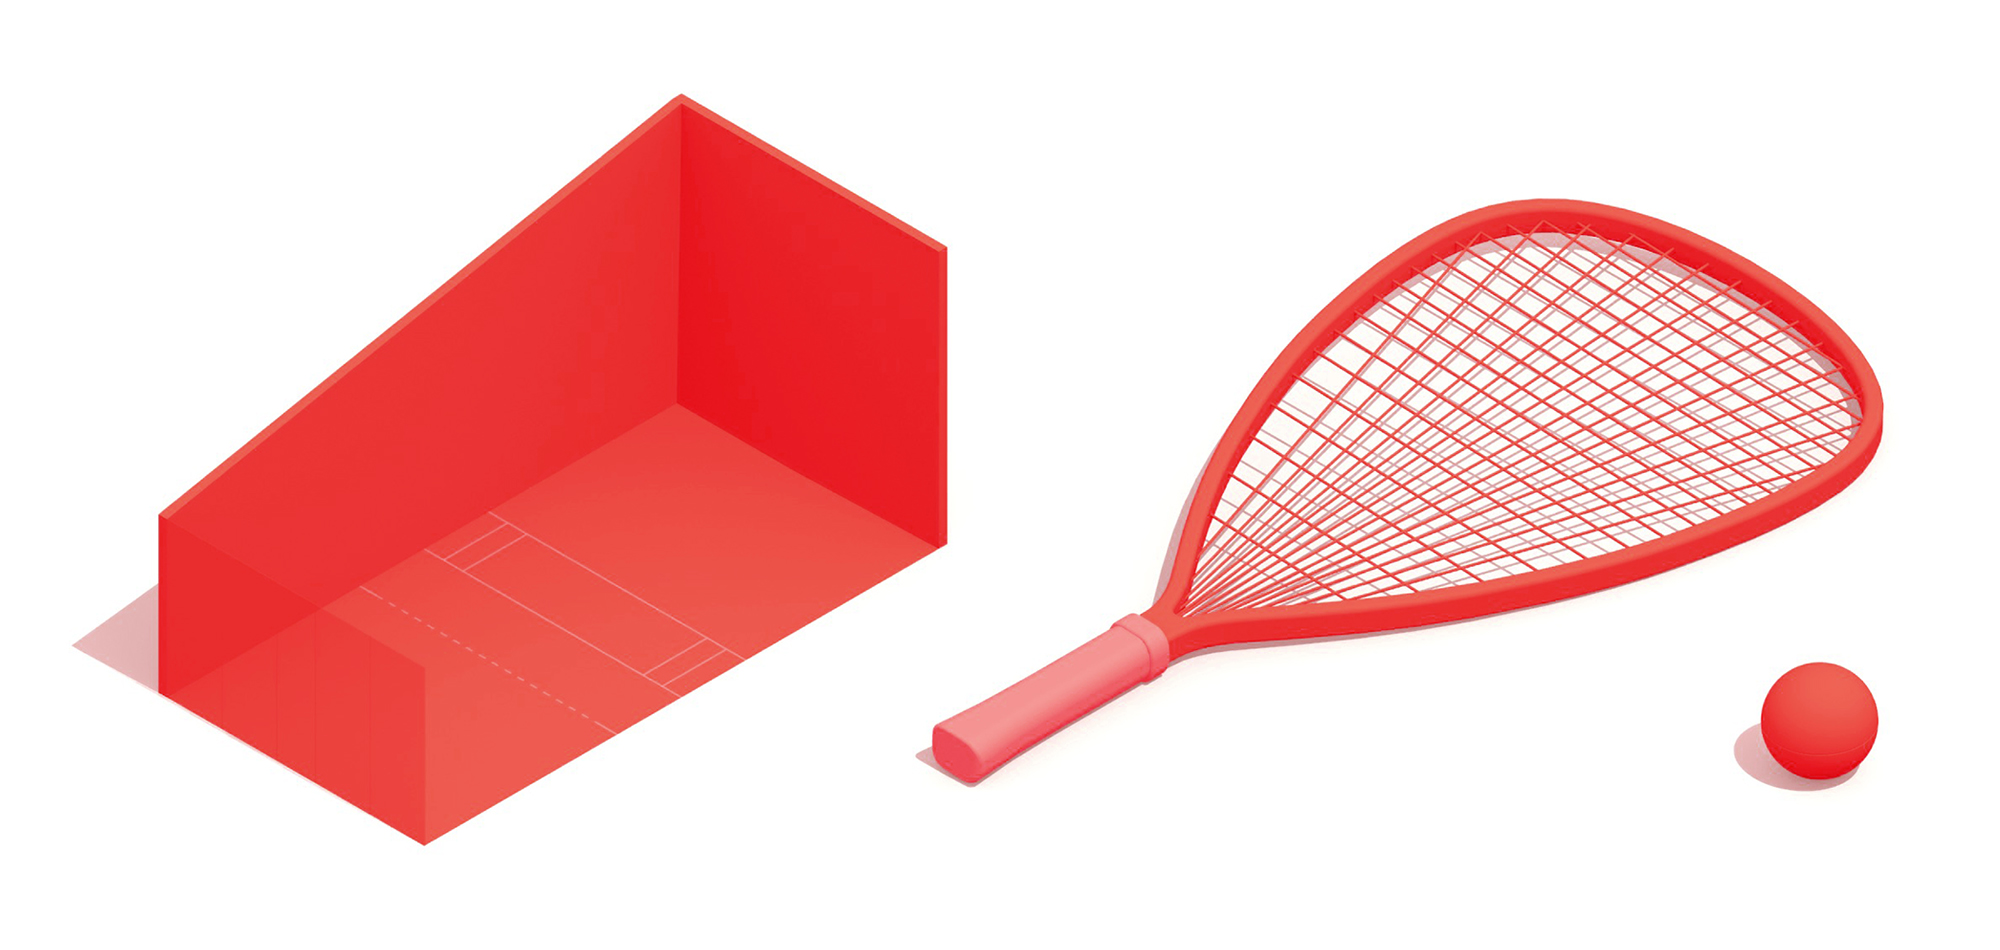 3D collection of Racquetball elements including the Racquetball court, racquet, and racquetball